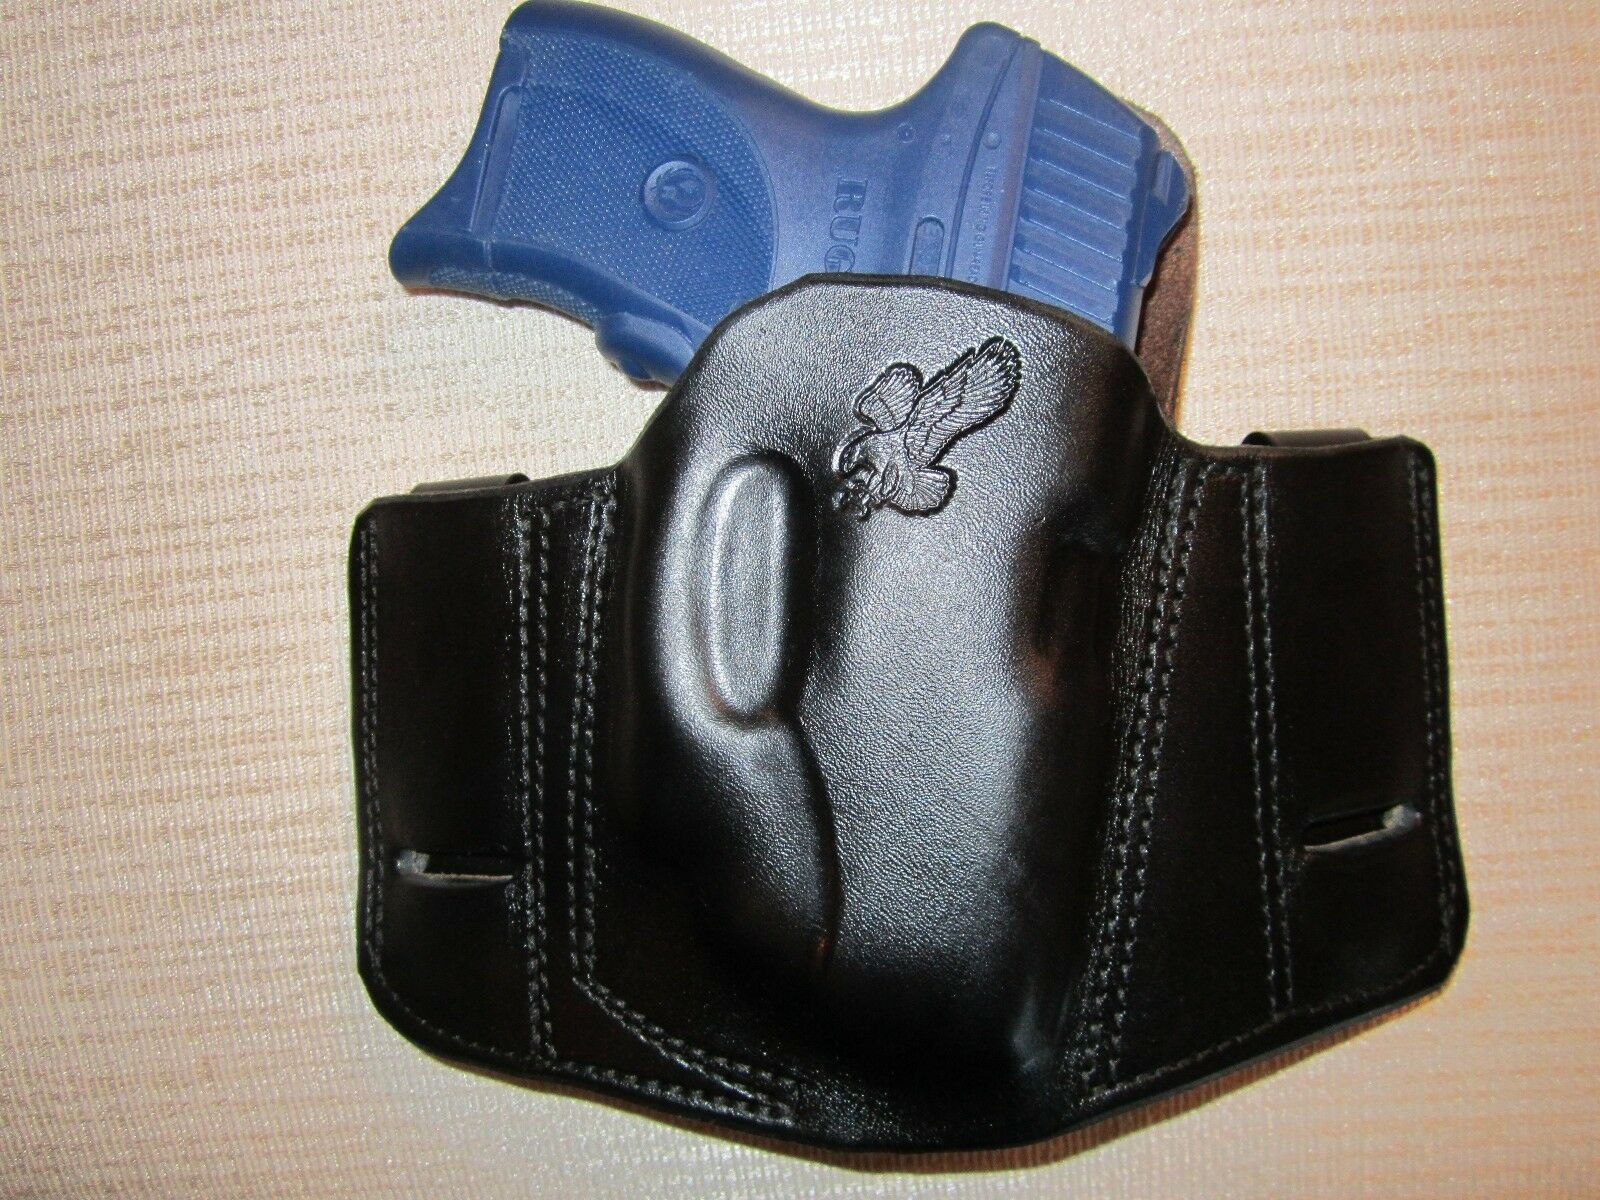 RUGER LC9 WITH CRIMSONTRACE LASER  REVERSIBLE, IWB OR OWB, R H,PANCAKE HOLSTER